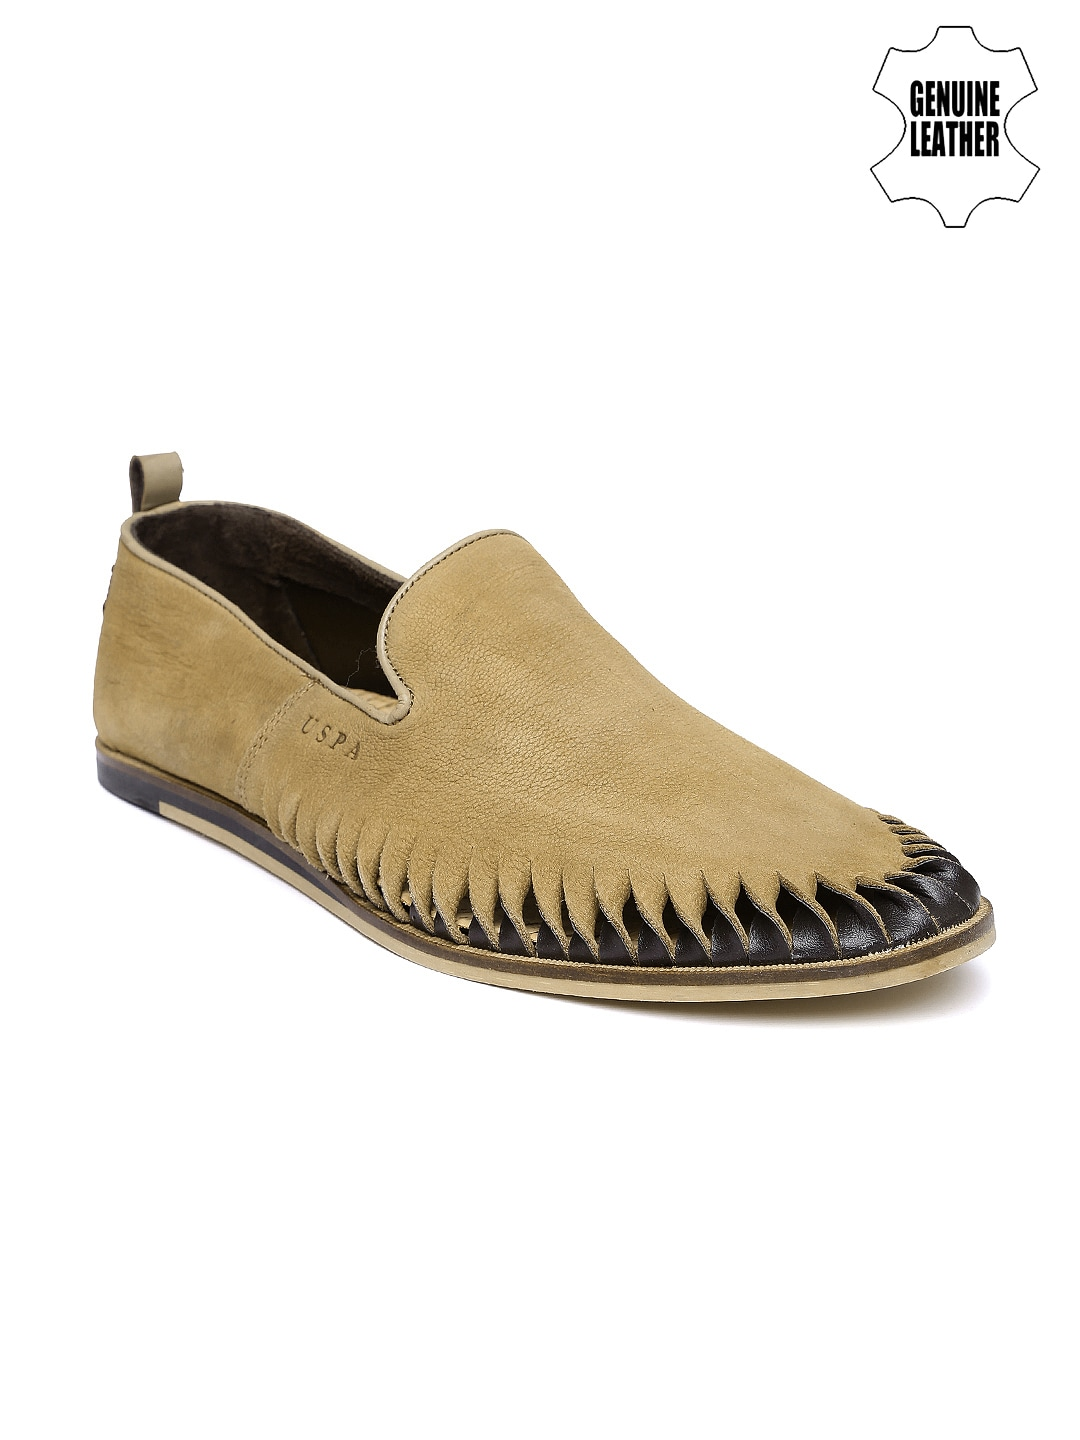 buy u s polo assn brown leather loafers footwear